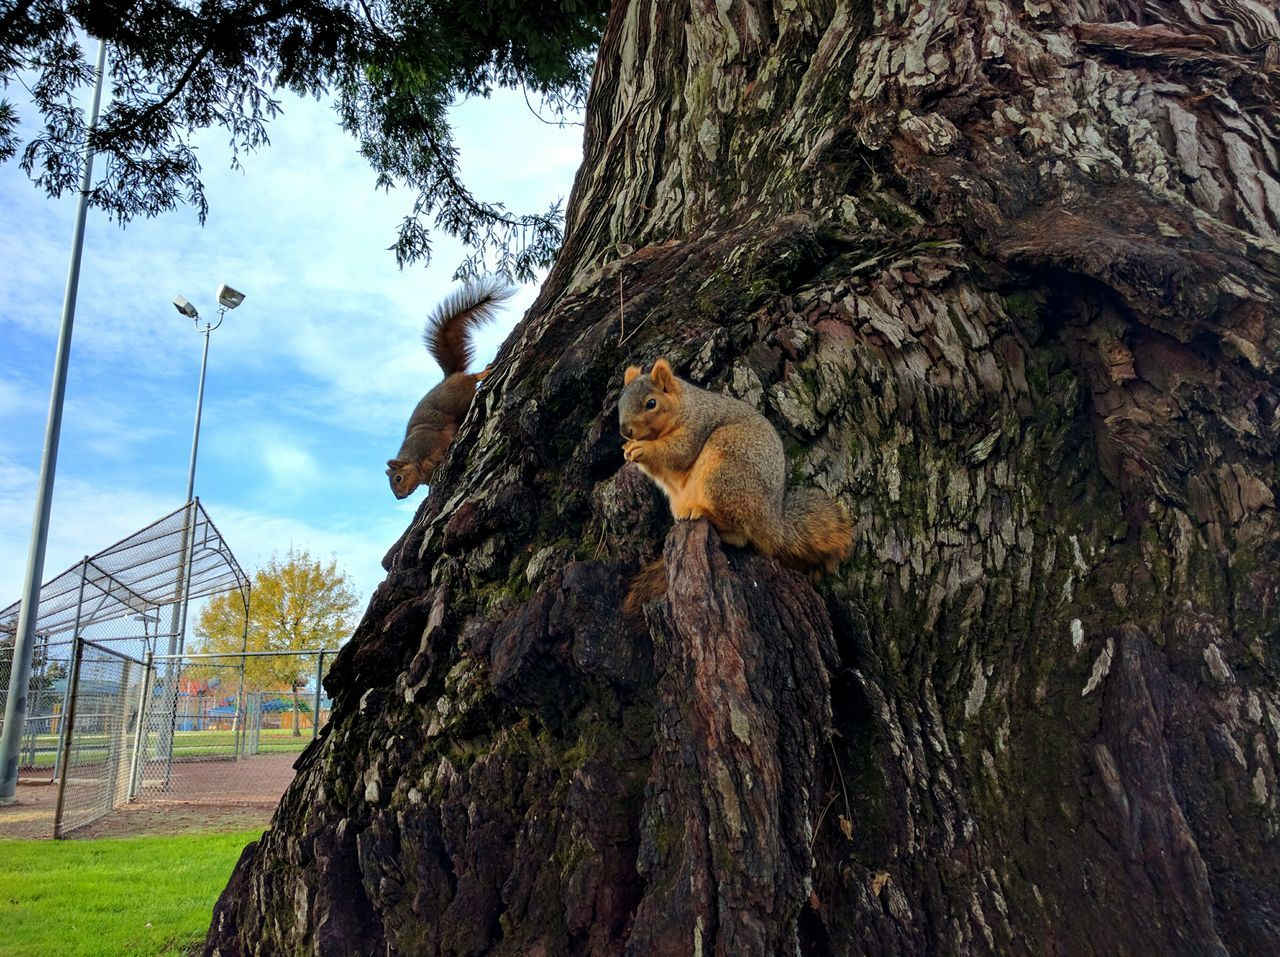 Low Angle View Of Squirrels On Tree Trunk At Park